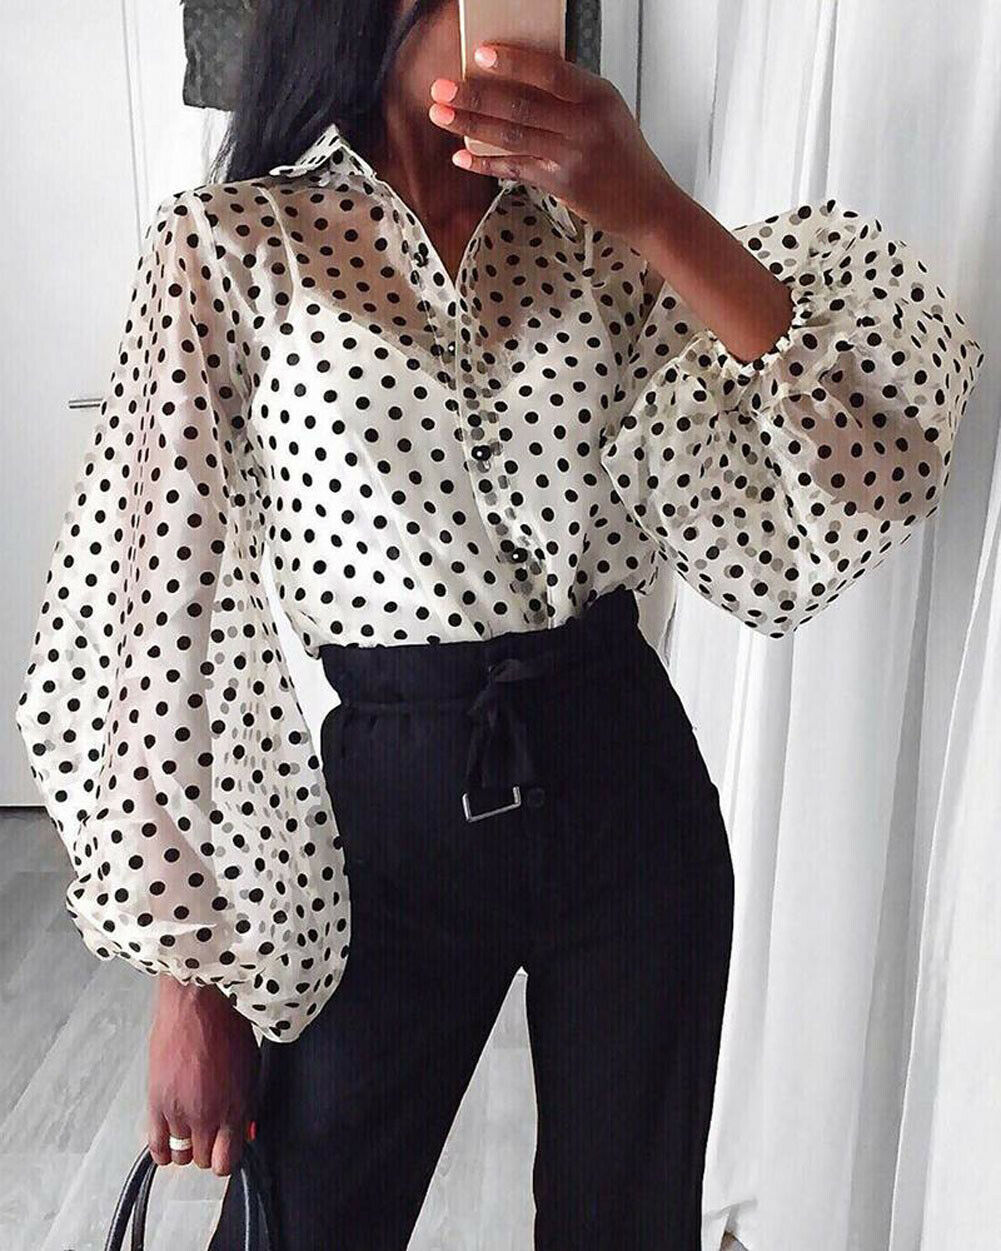 Fashion Womens Summer Mesh   Shirt   See-through Polka Dot Long Sleeve Casual   Shirts   Top Black Lace Sheer Loose   Blouse   Tops Black